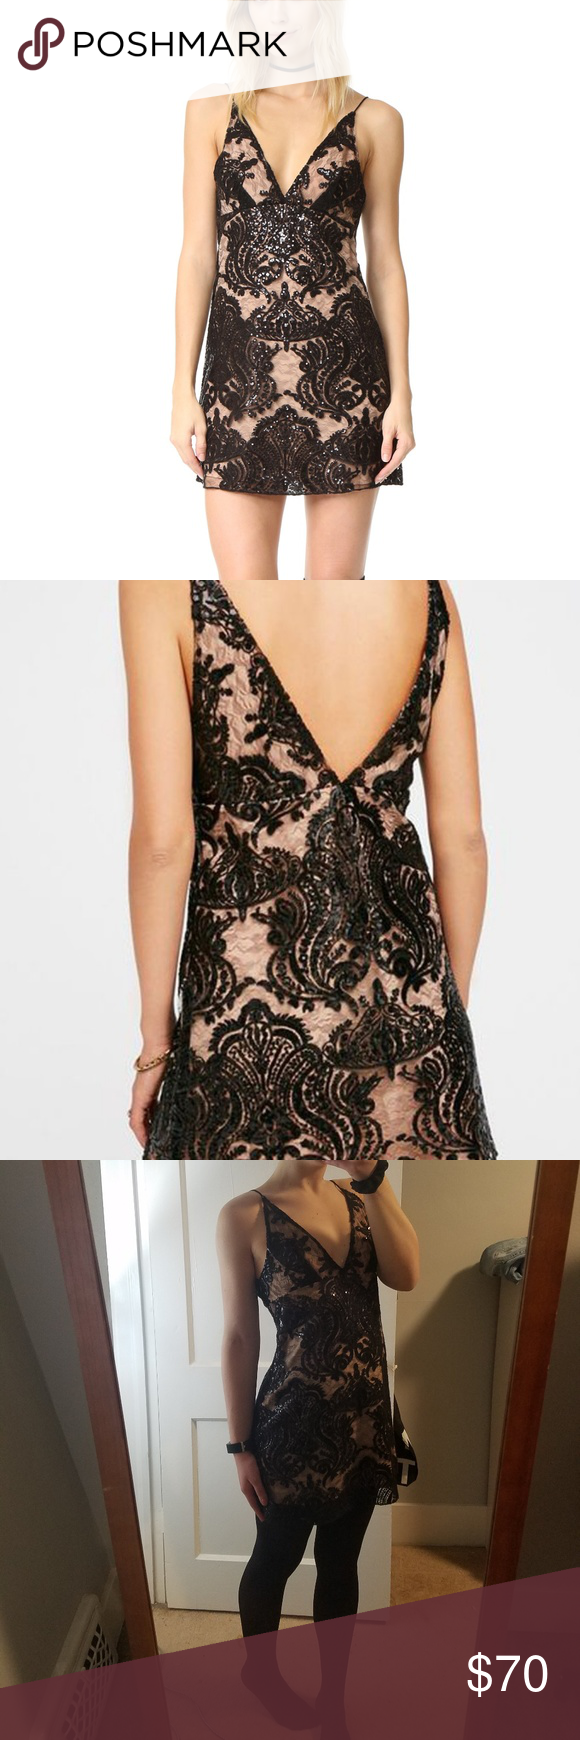 Free People Night Shimmers Dress Sz 4 | Shimmer dress, Dress